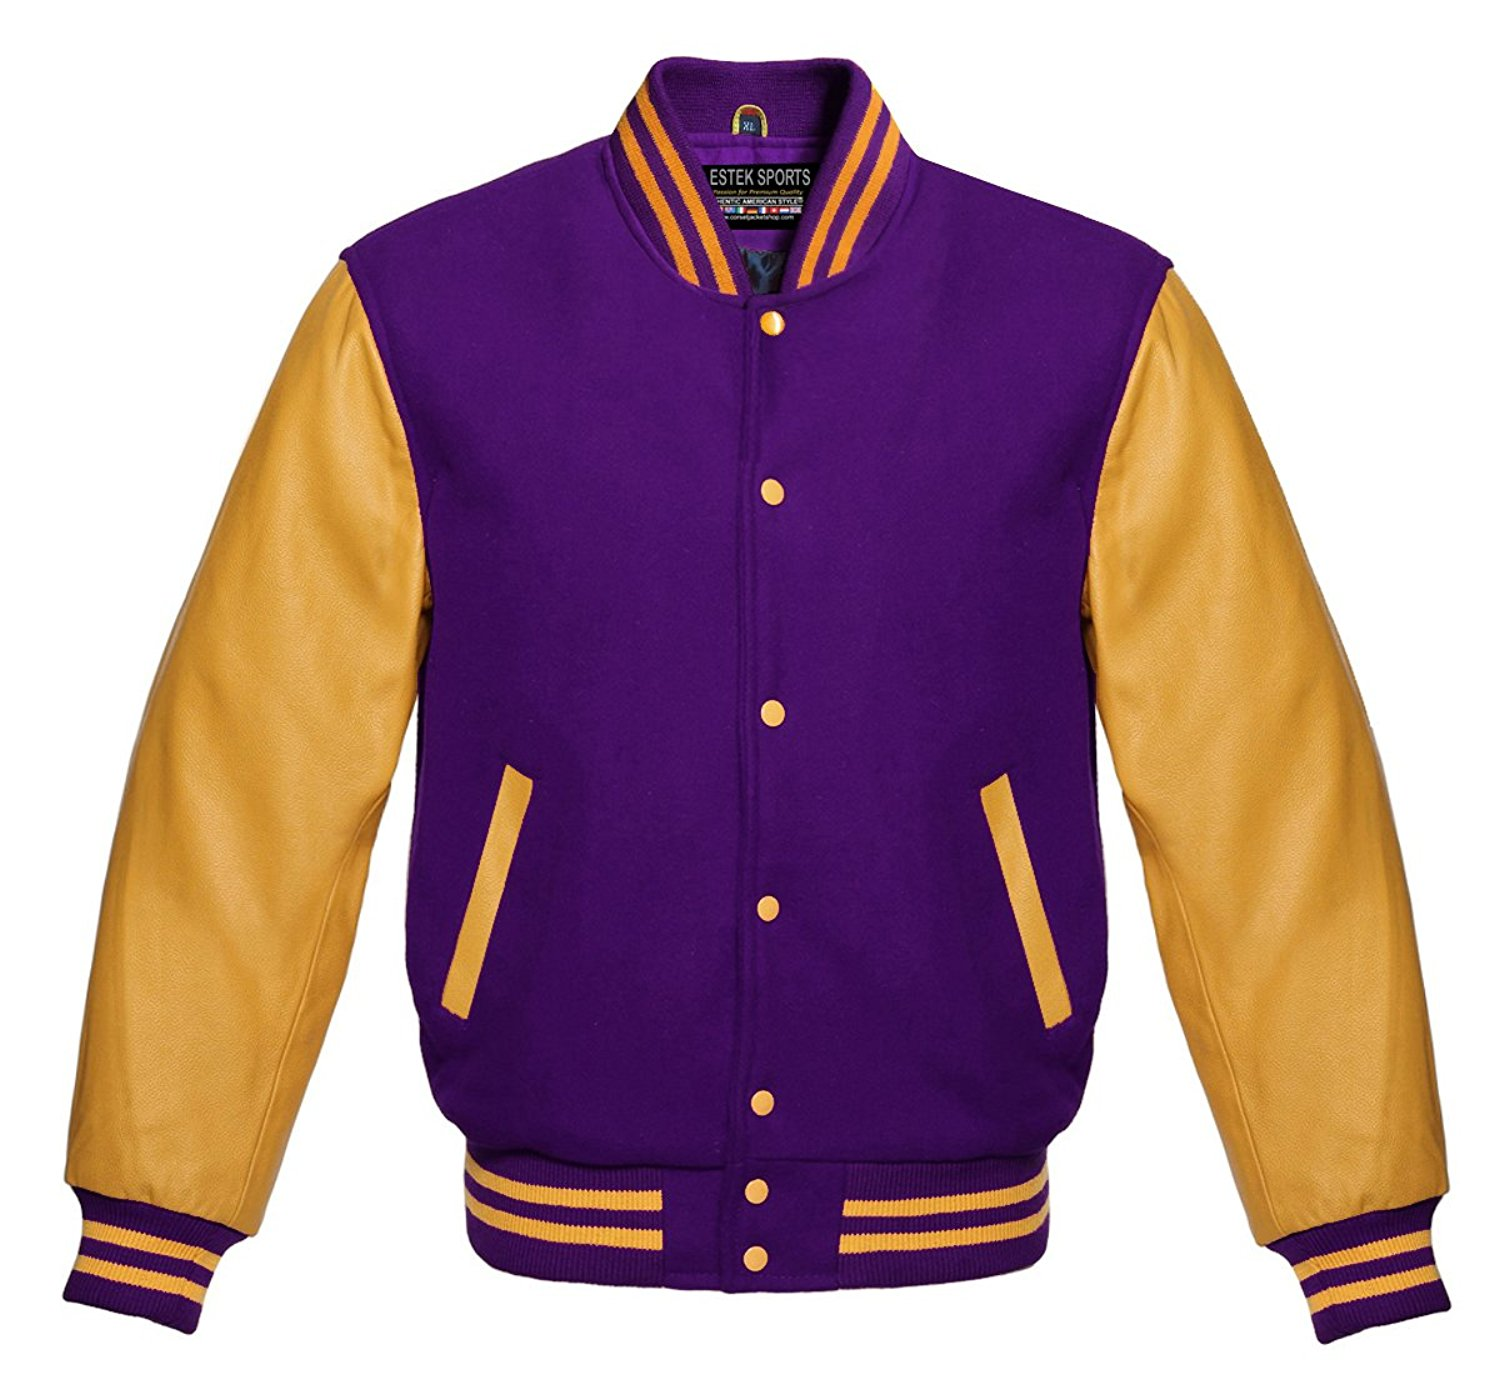 84a55ac0 Get Quotations · Estek Sports Men's Authentic American Varsity Letterman  Jacket Purple Wool & Genuine Gold Leather Sleeves